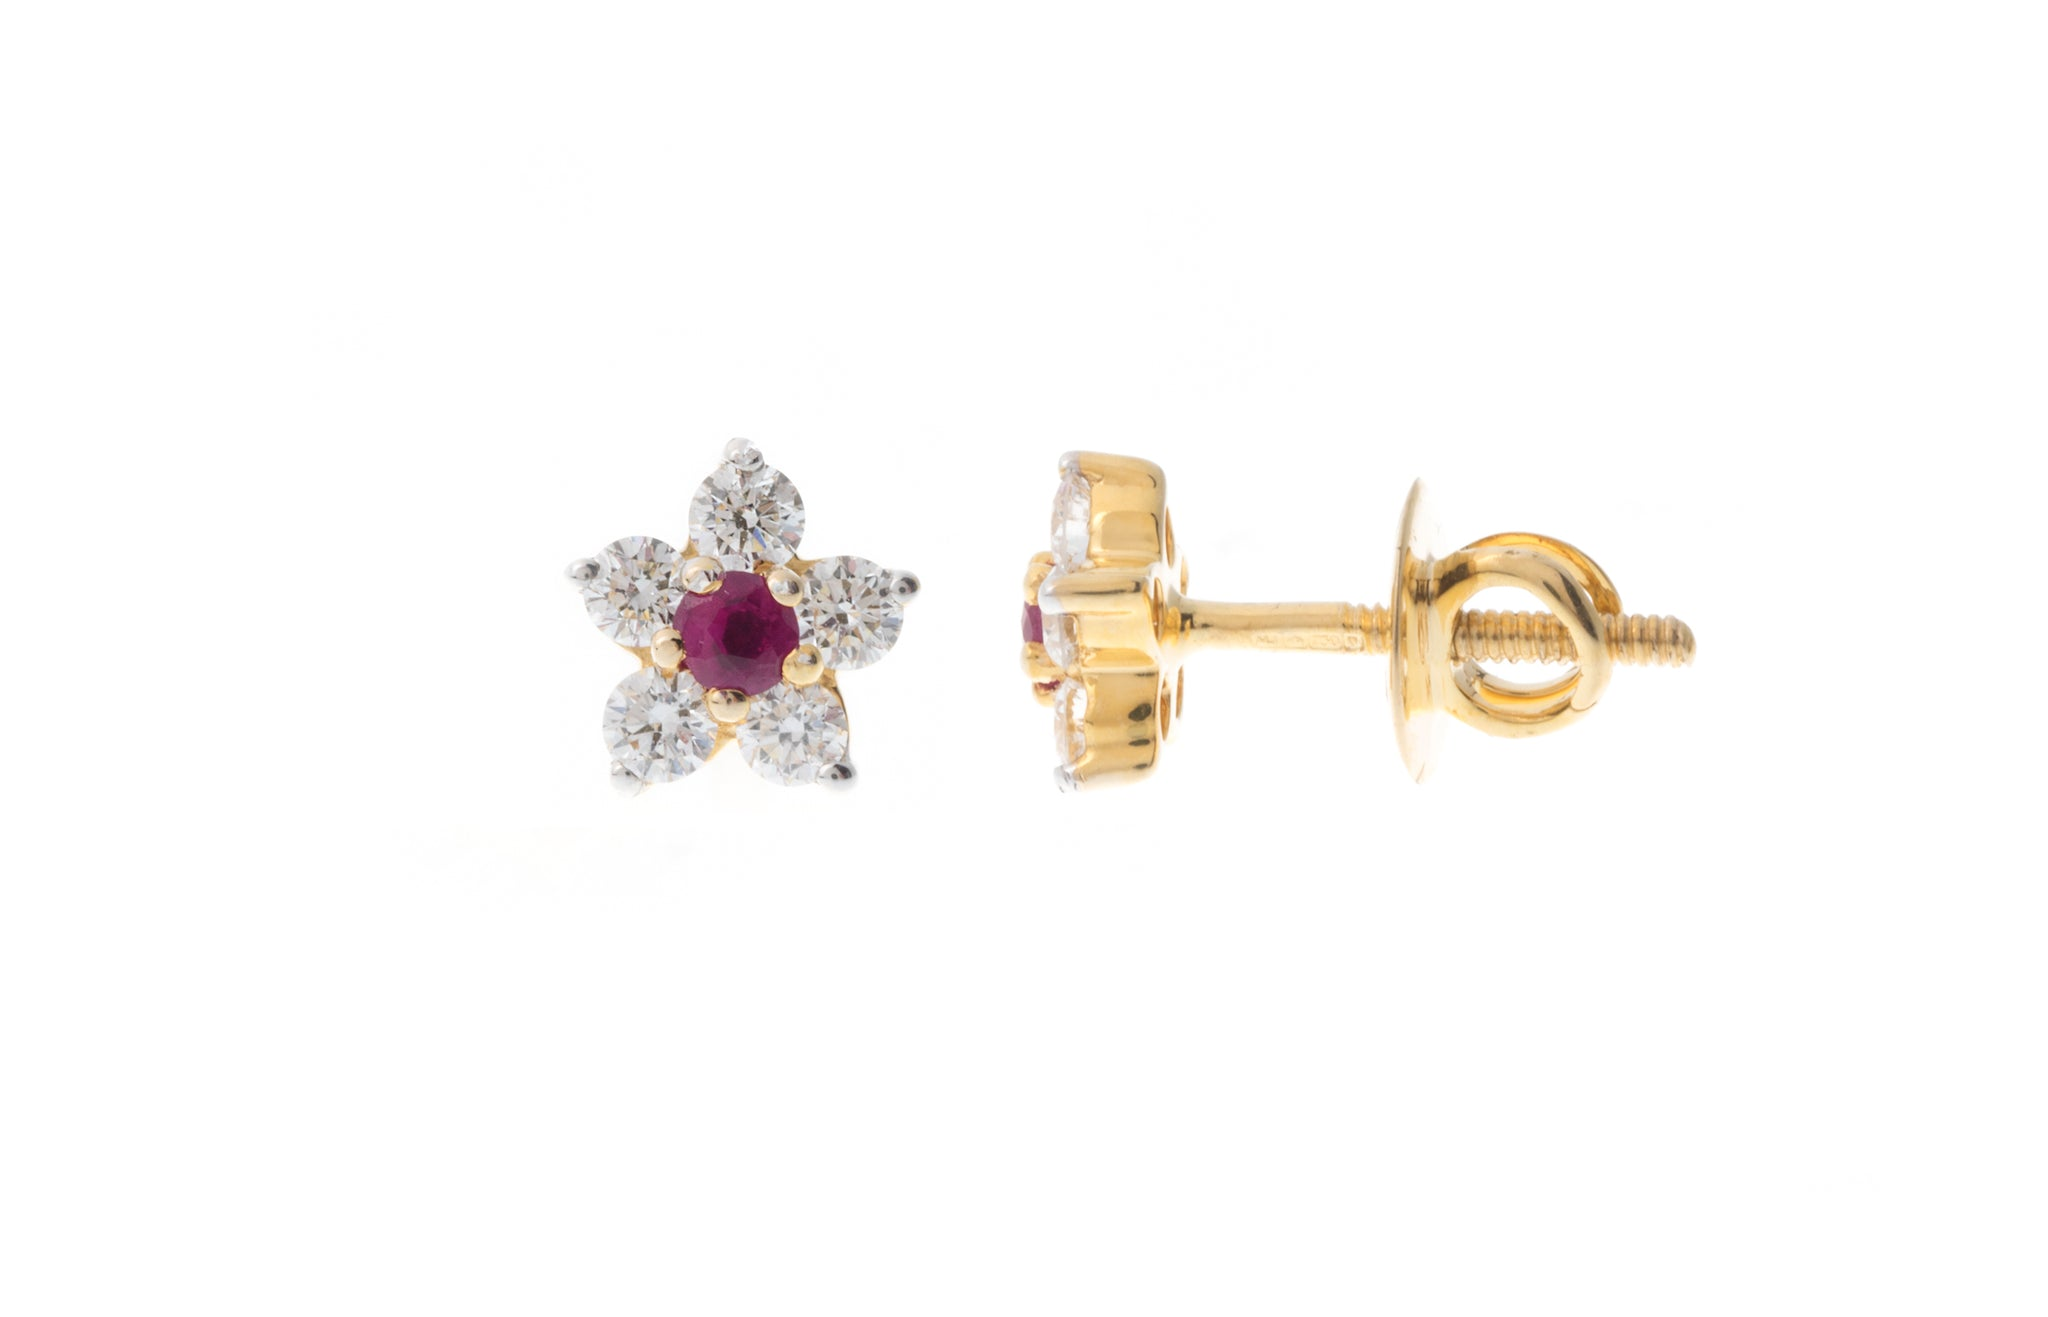 18ct Yellow Gold Diamond and Ruby Flower Design Ear Studs MCS2771